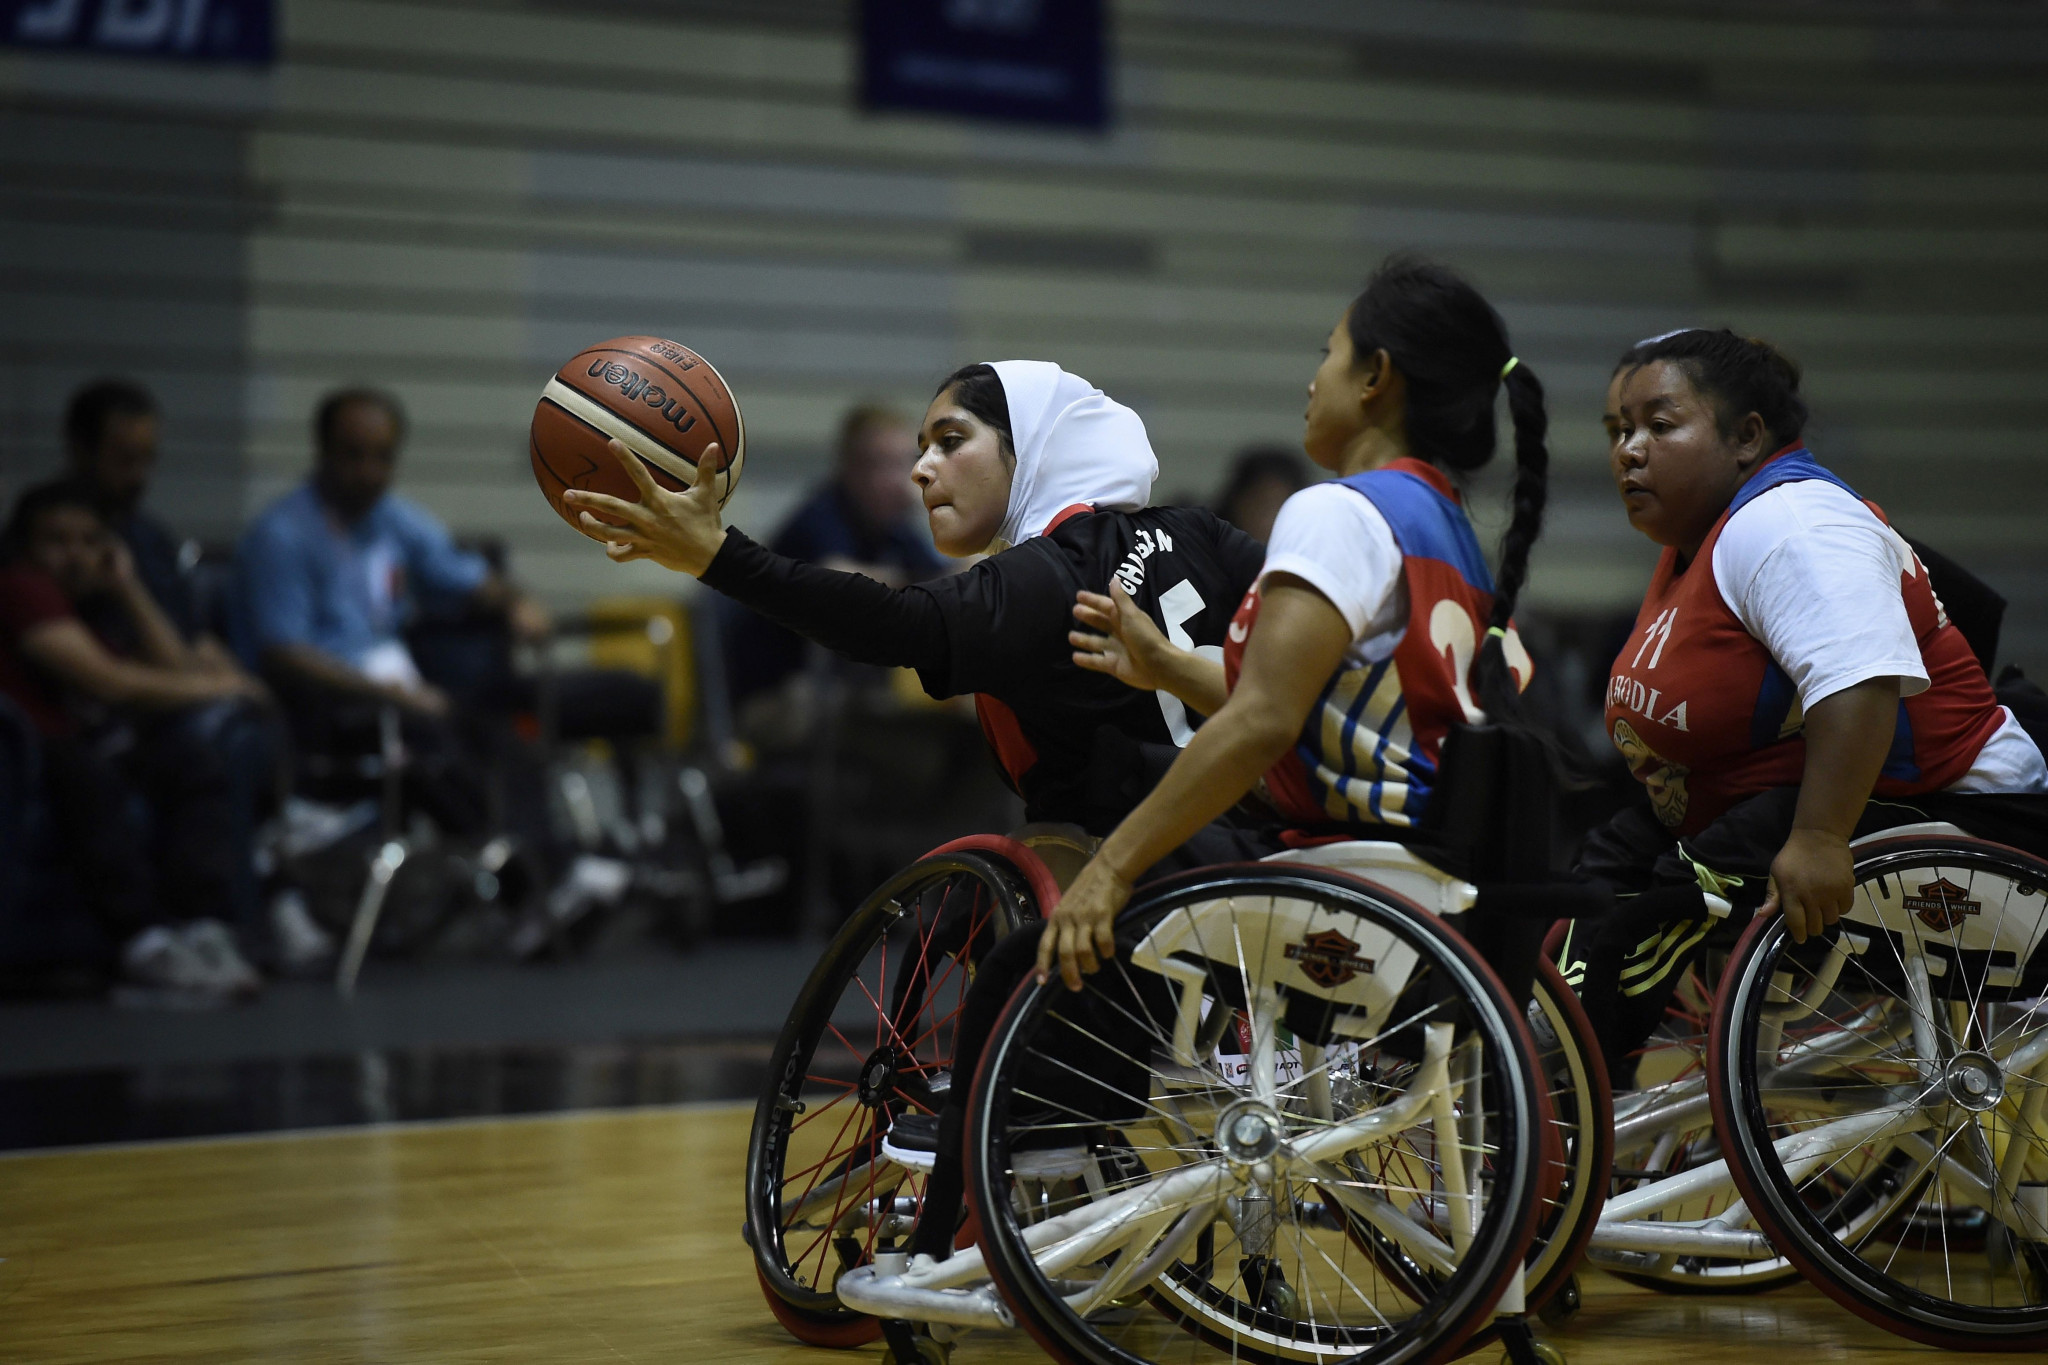 IWBF announce team of international technical officials for 2018 Asian Para Games